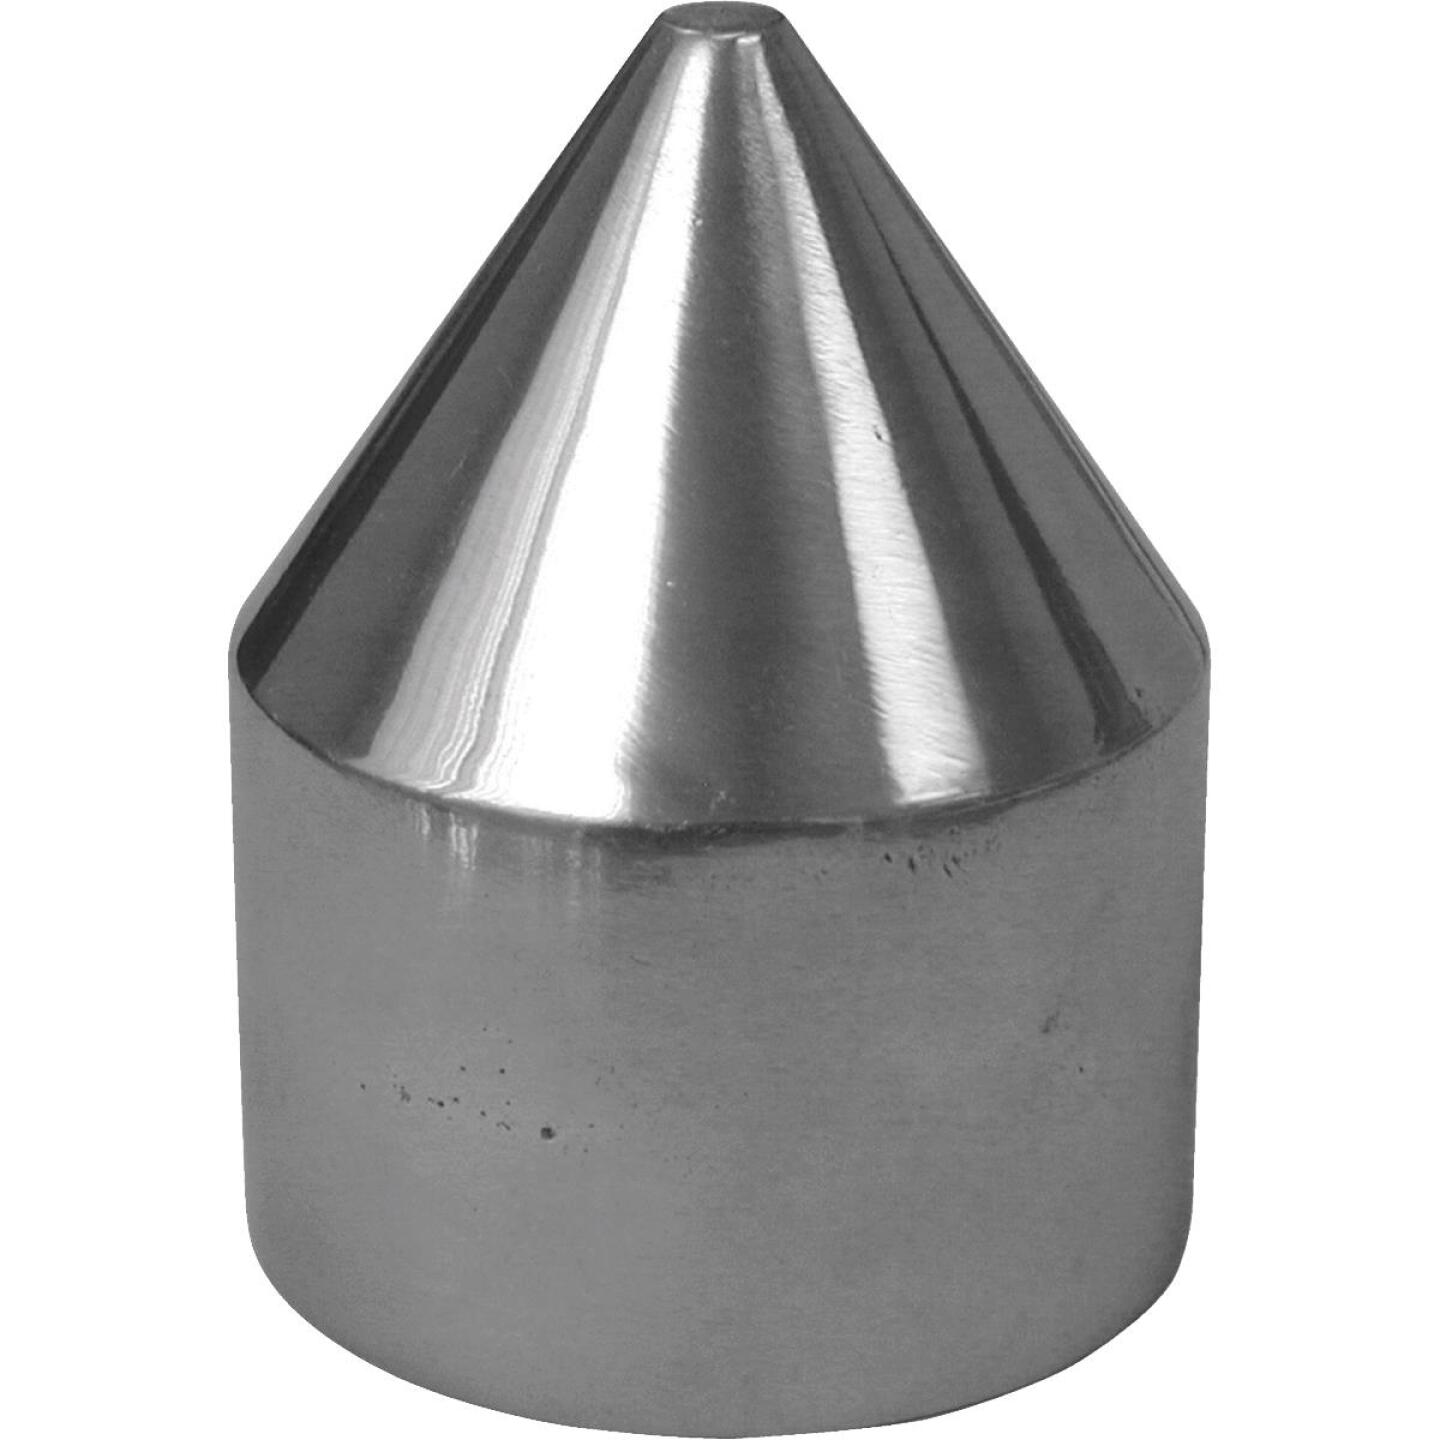 Midwest Air Tech No-Way Bullet 2-3/8 in. Aluminum Cap Image 1